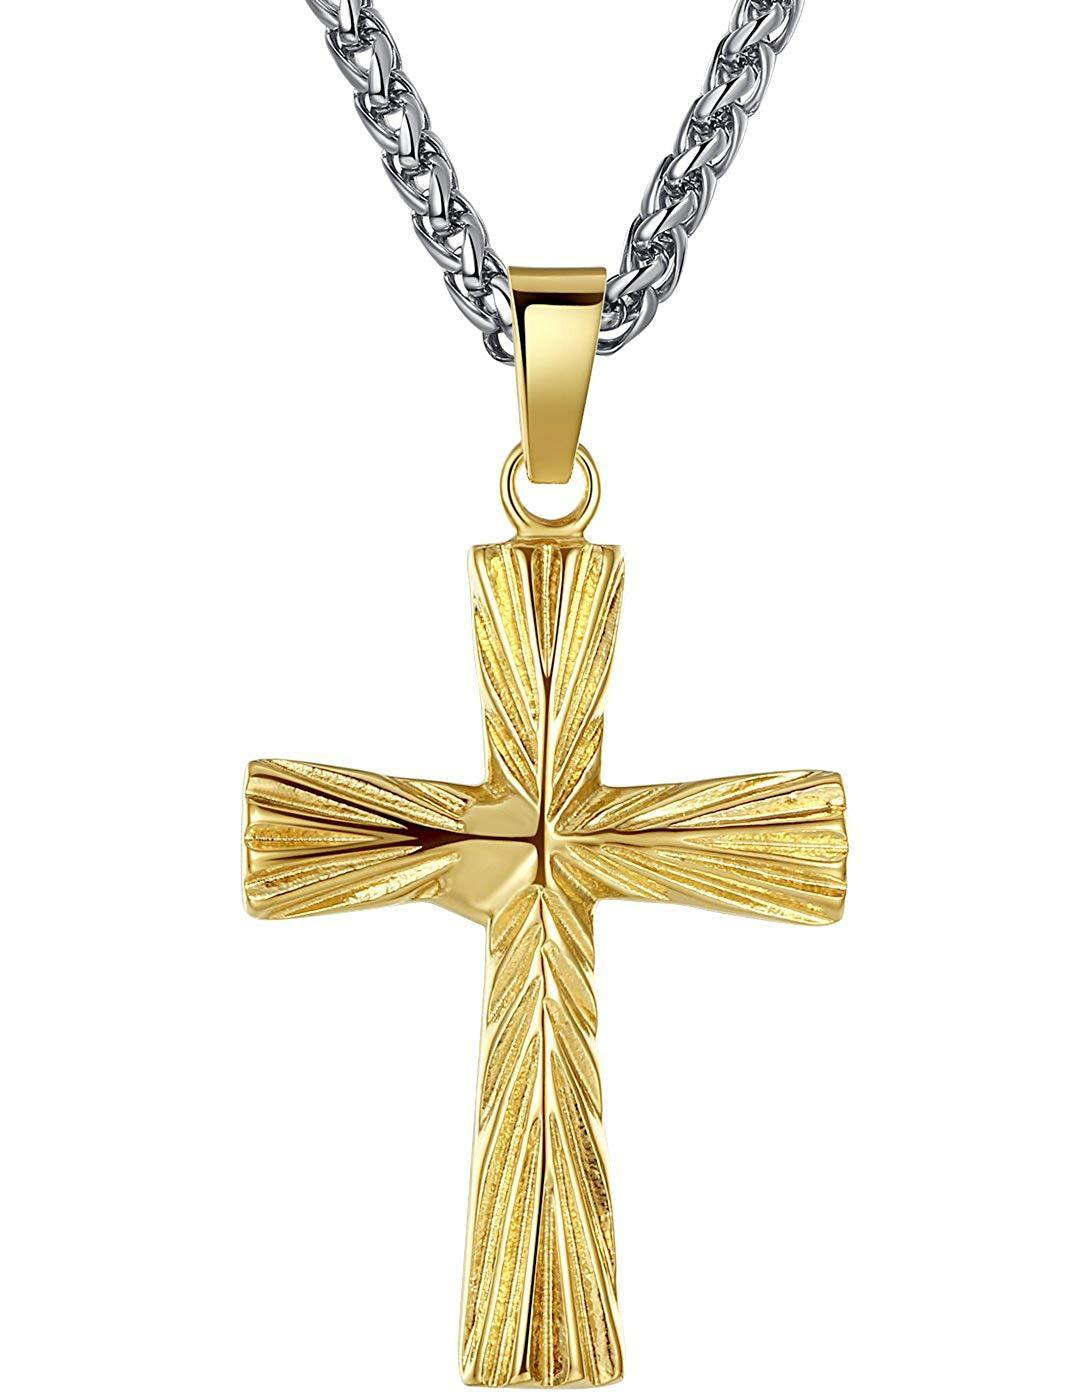 "Aoiy Men's Stainless Steel Cross Religious Pendant Necklace, 24"" Link Chain, jjp012ji"